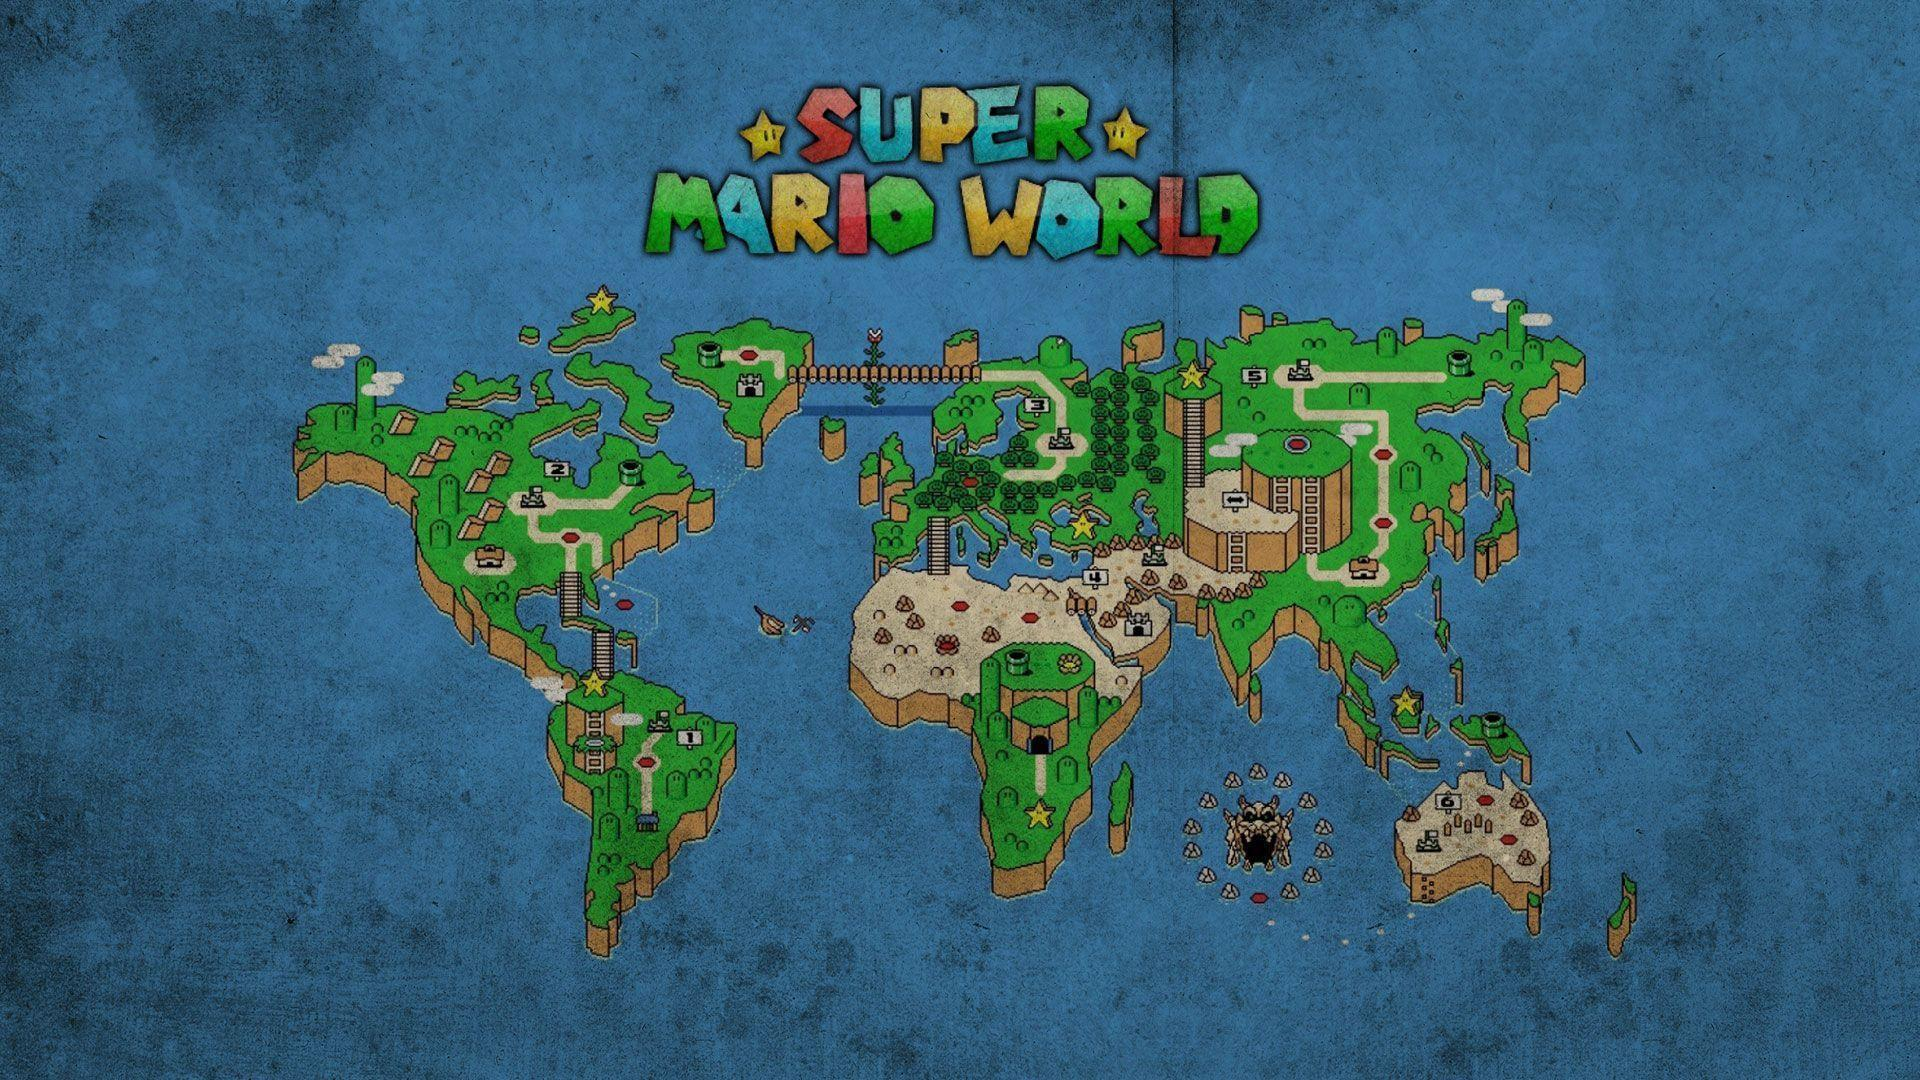 super mario world hd wallpapers and background images - stmed